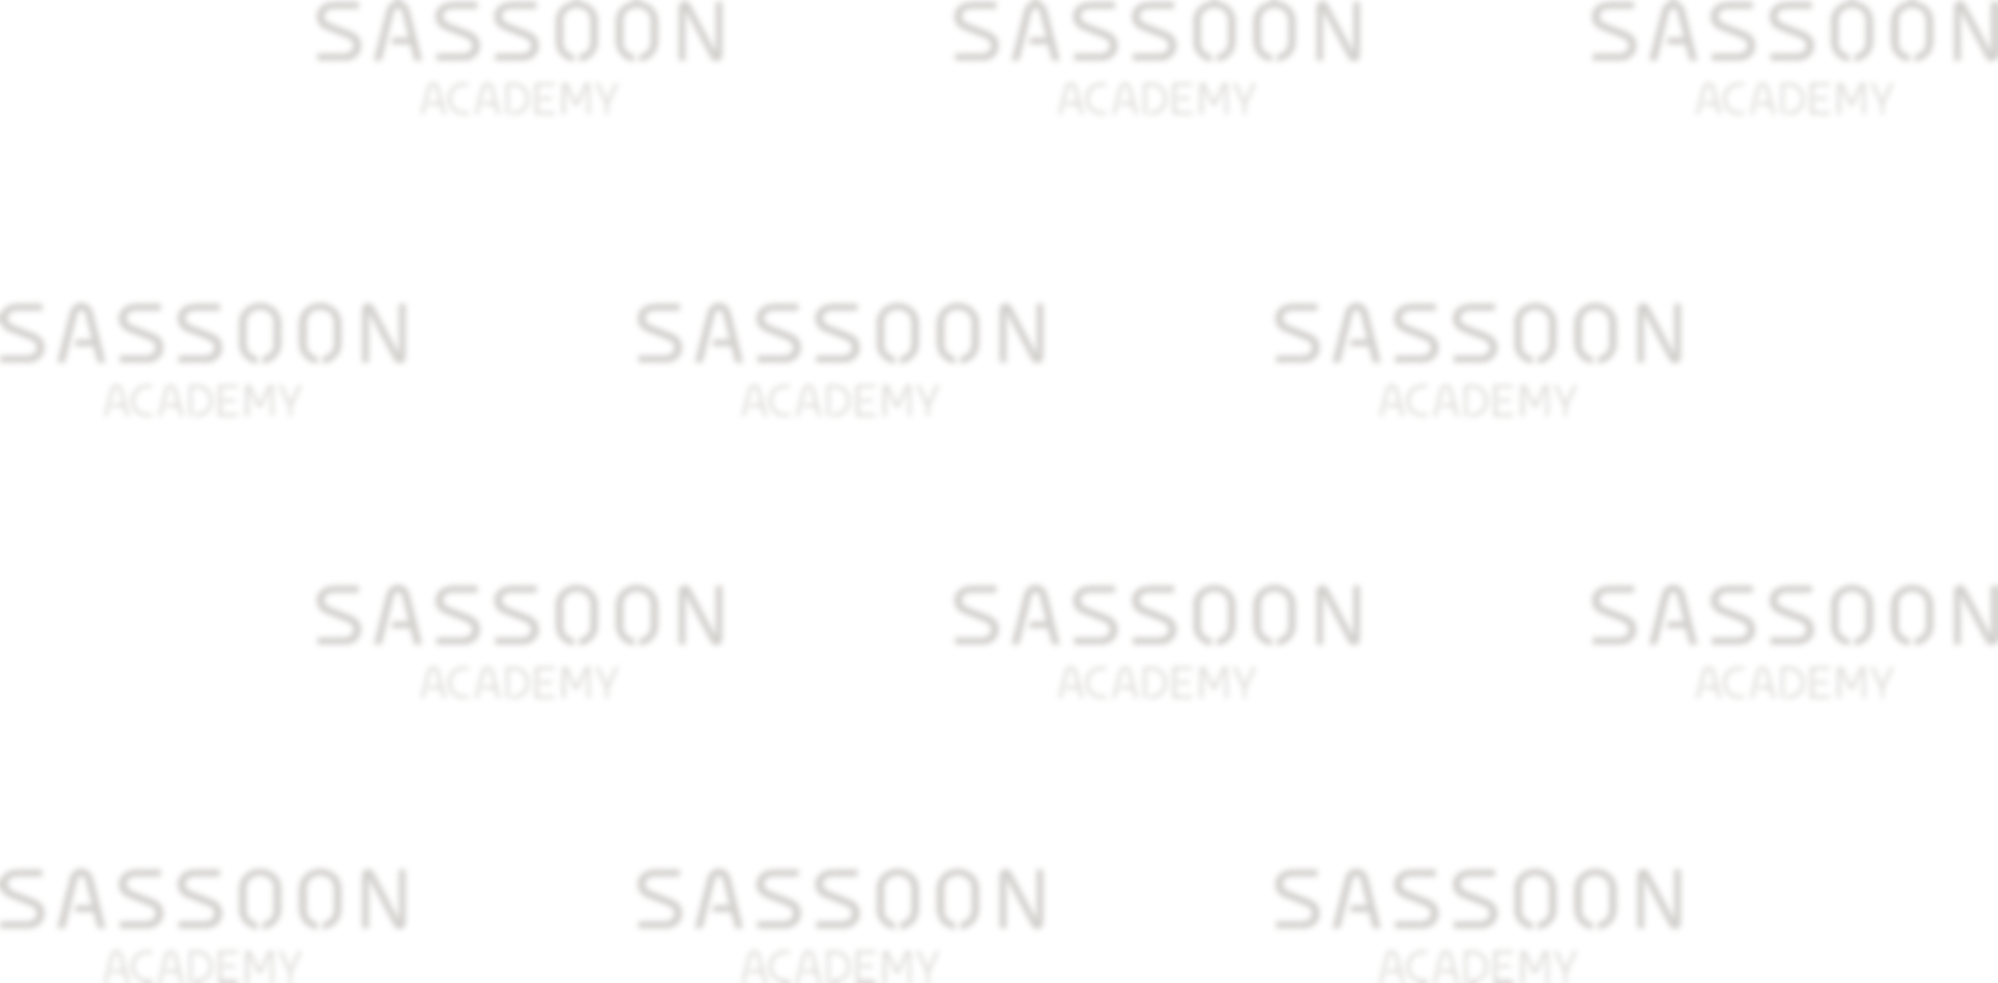 sassoon academy logo background slider image with transparency extra light and blur